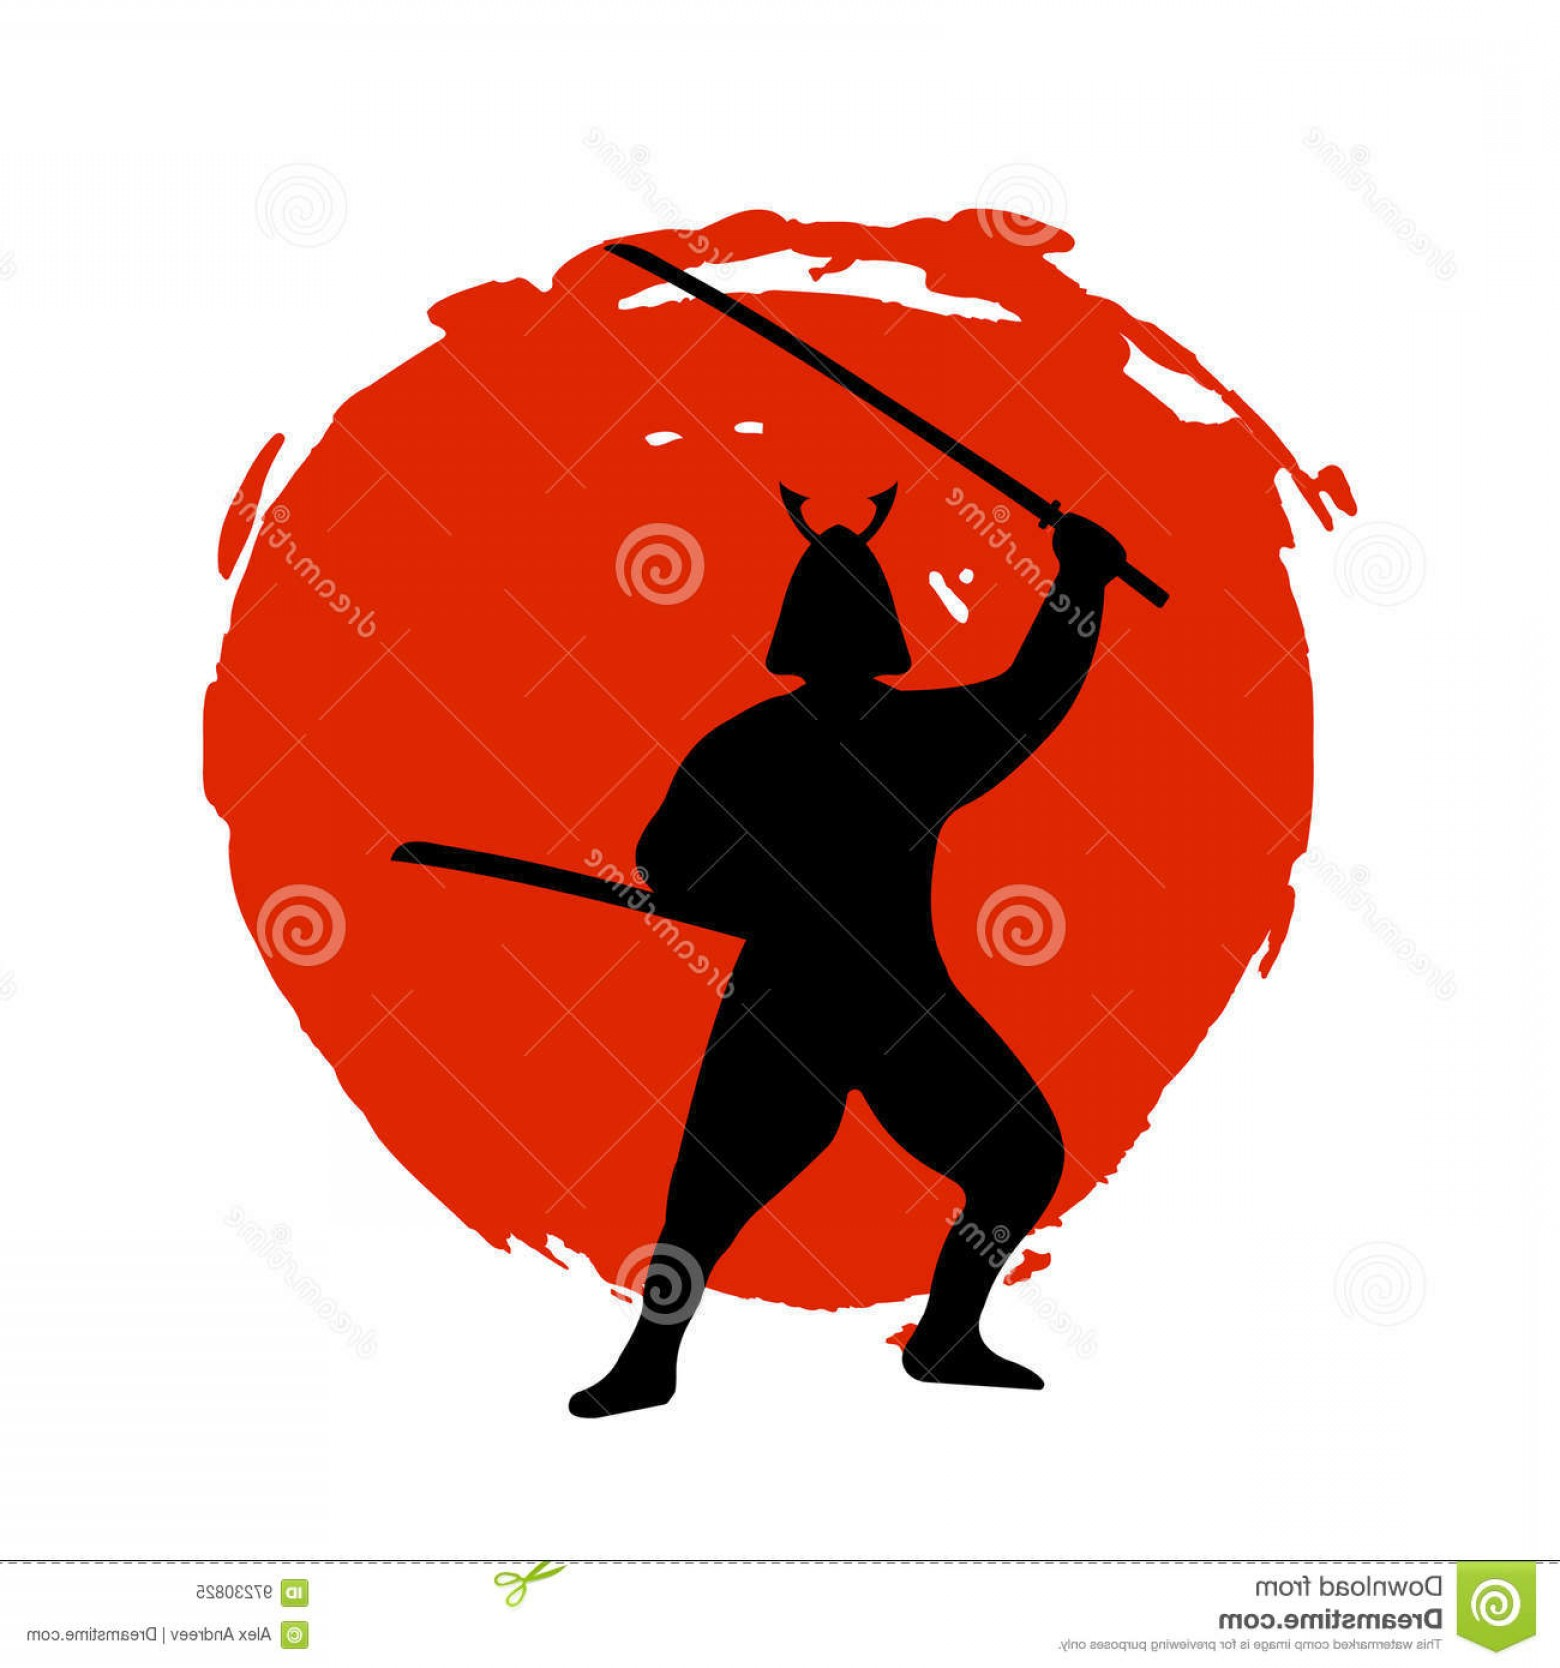 Red Samurai Vector: Stock Illustration Samurai Warrior Silhouette Red Moon White Background Isolated Vector Illustration Image